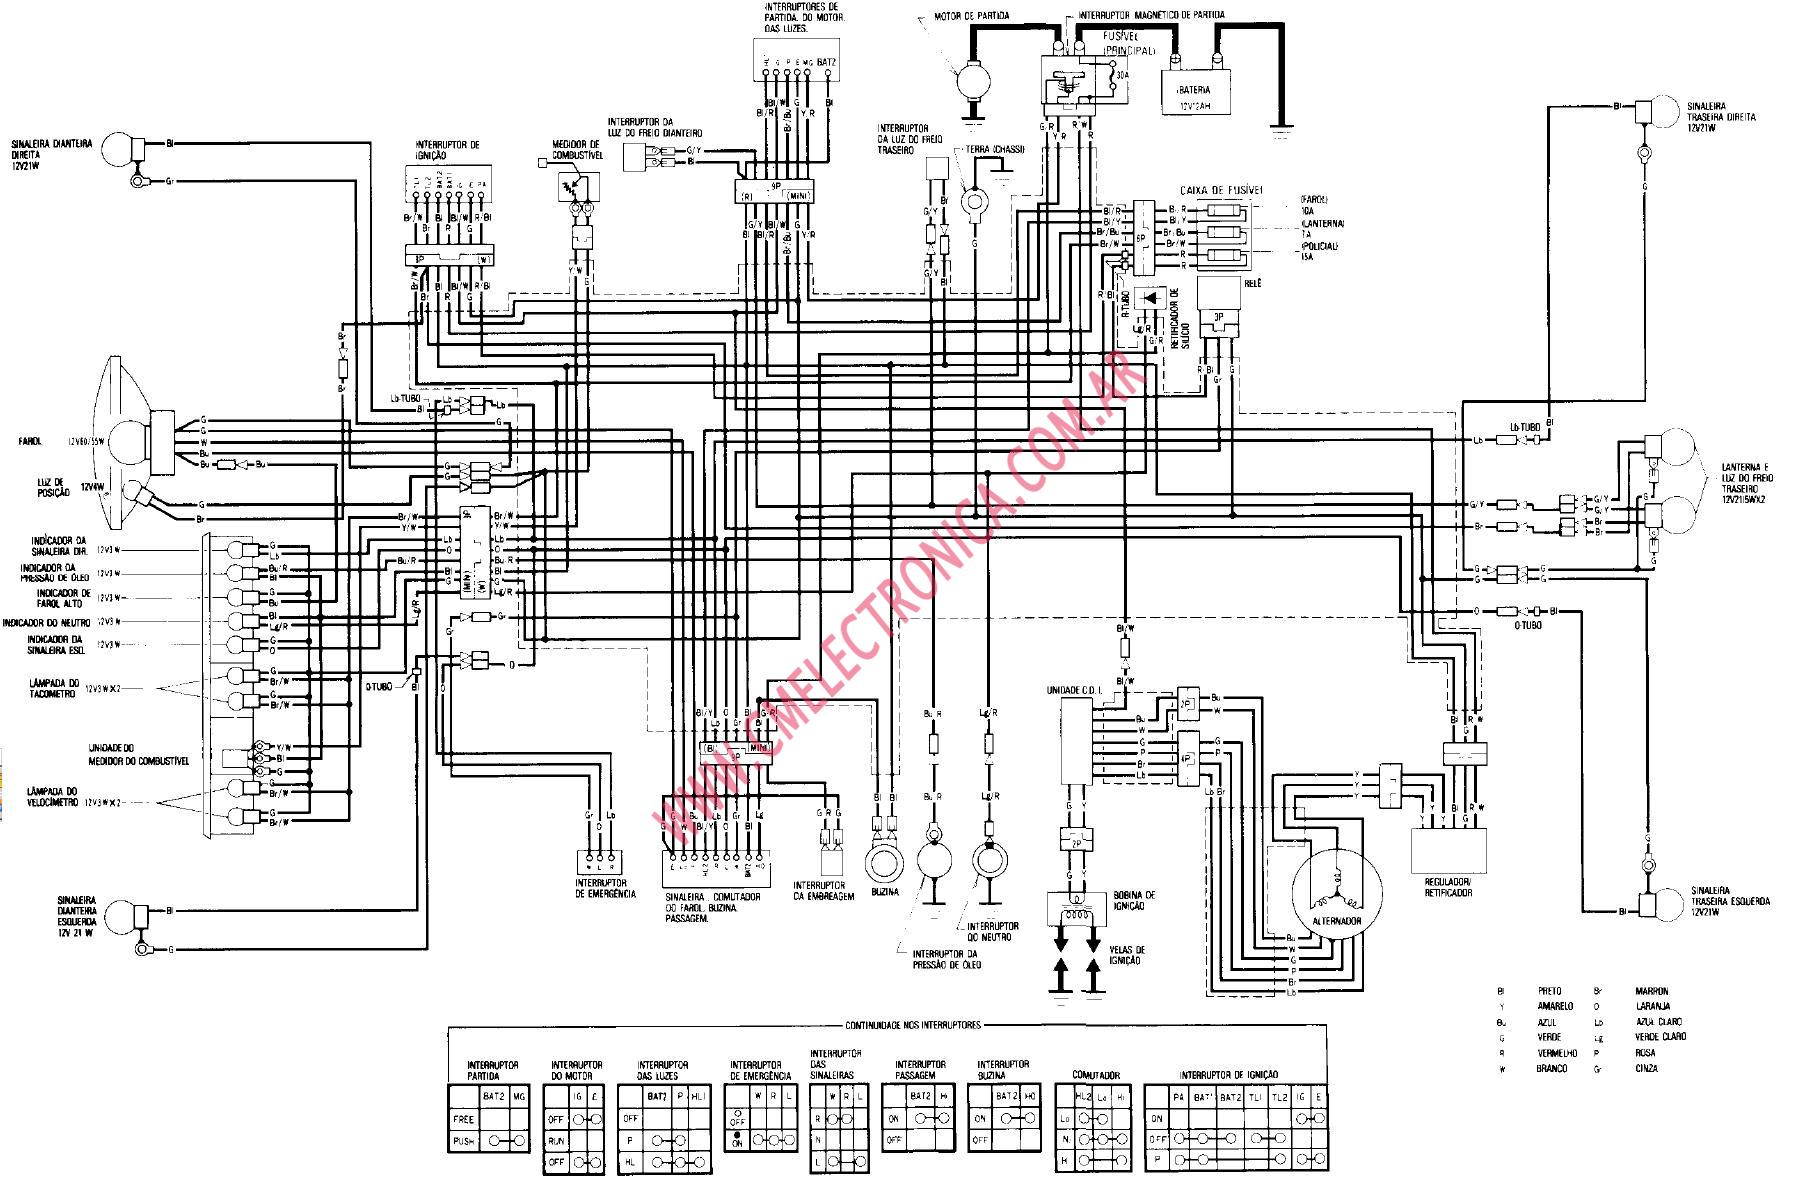 Wiring Diagram For Honda Civic